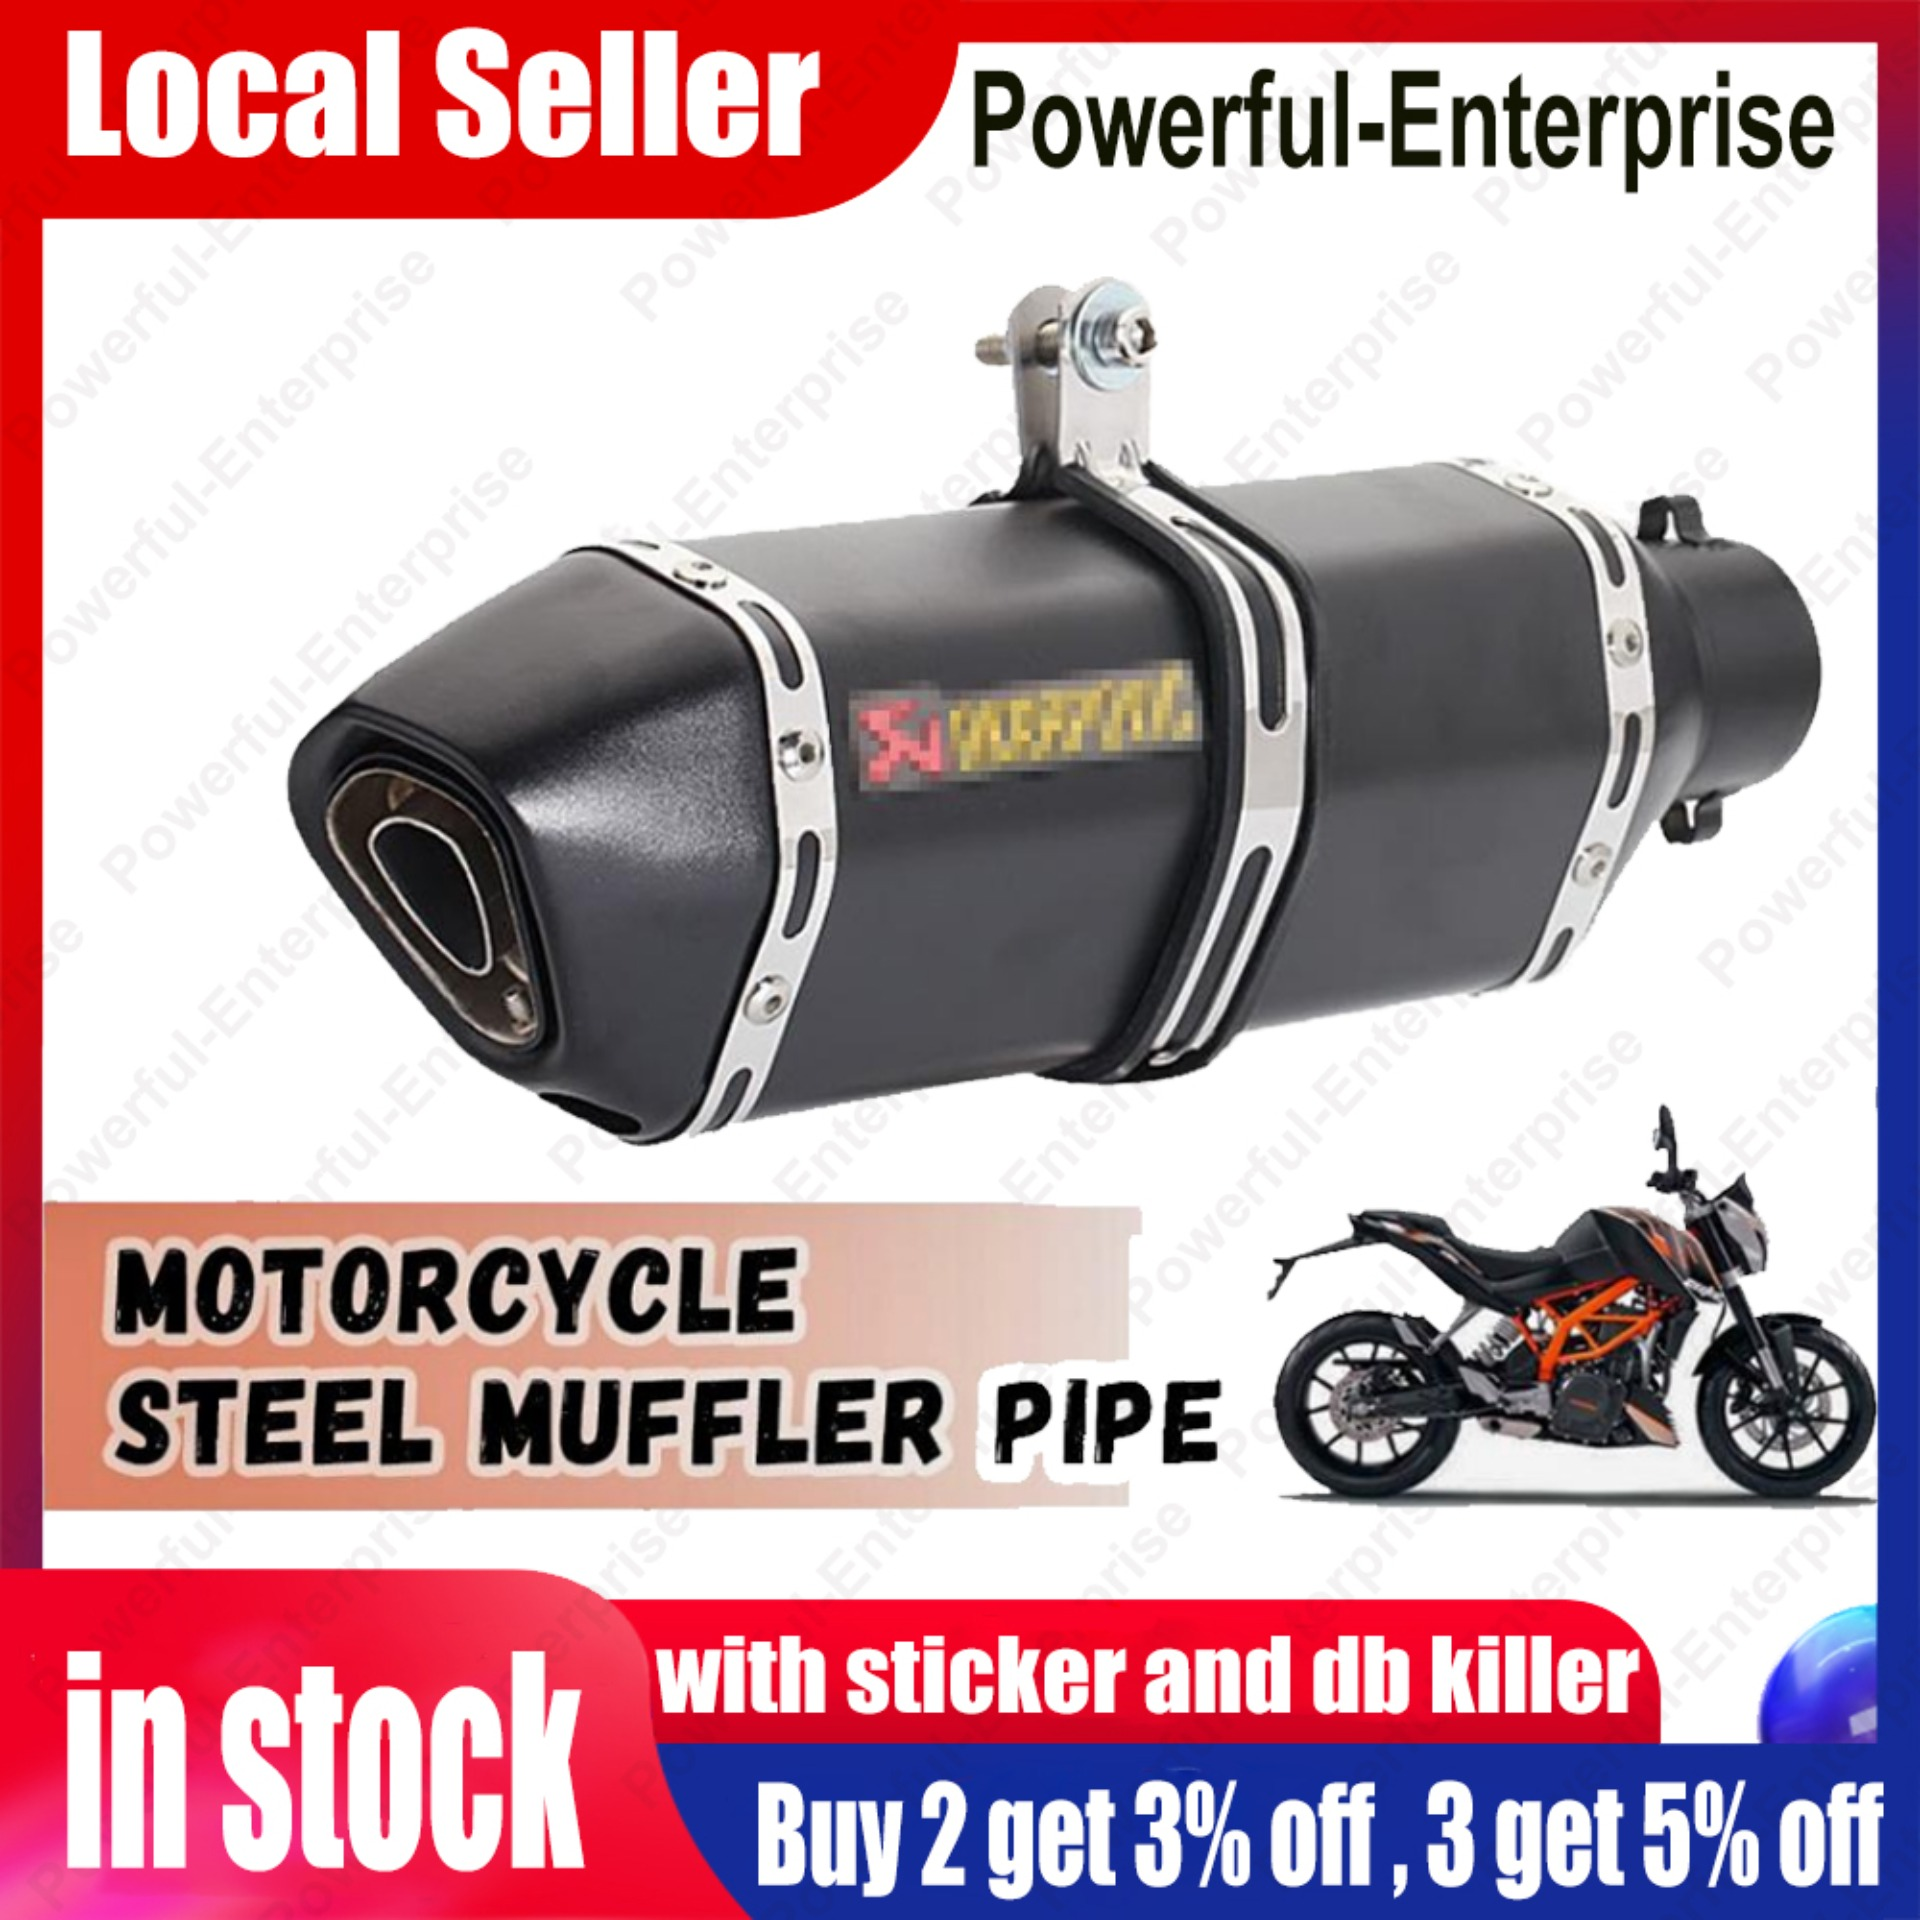 51mm Motorcycle Exhaust Muffler With Silencer Db Killer And Ak Sticker Lazada Ph